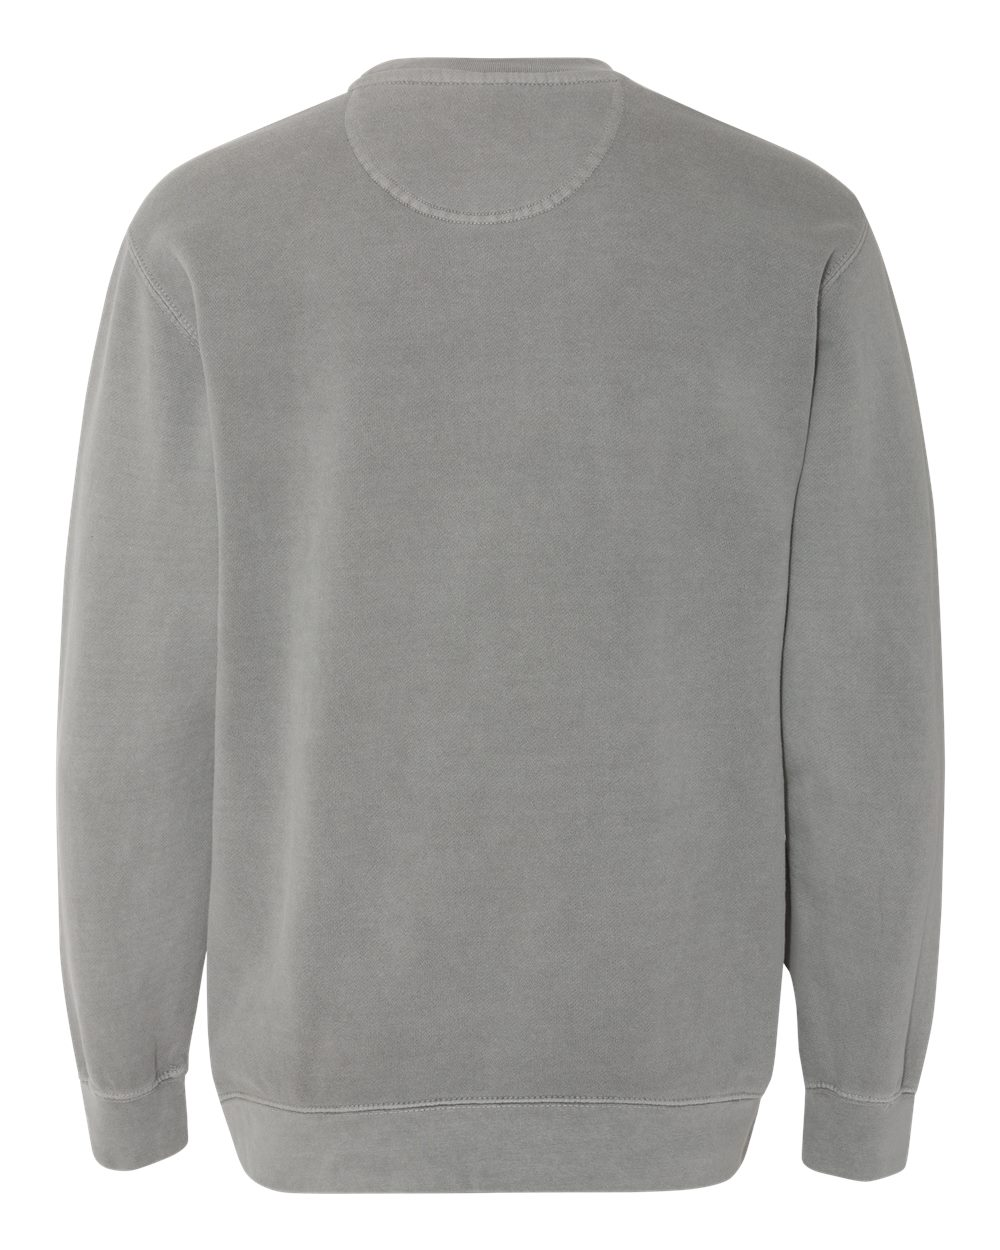 Comfort-Colors-Mens-Garment-Dyed-Ringspun-Crewneck-Sweatshirt-1566-up-to-3XL miniature 34